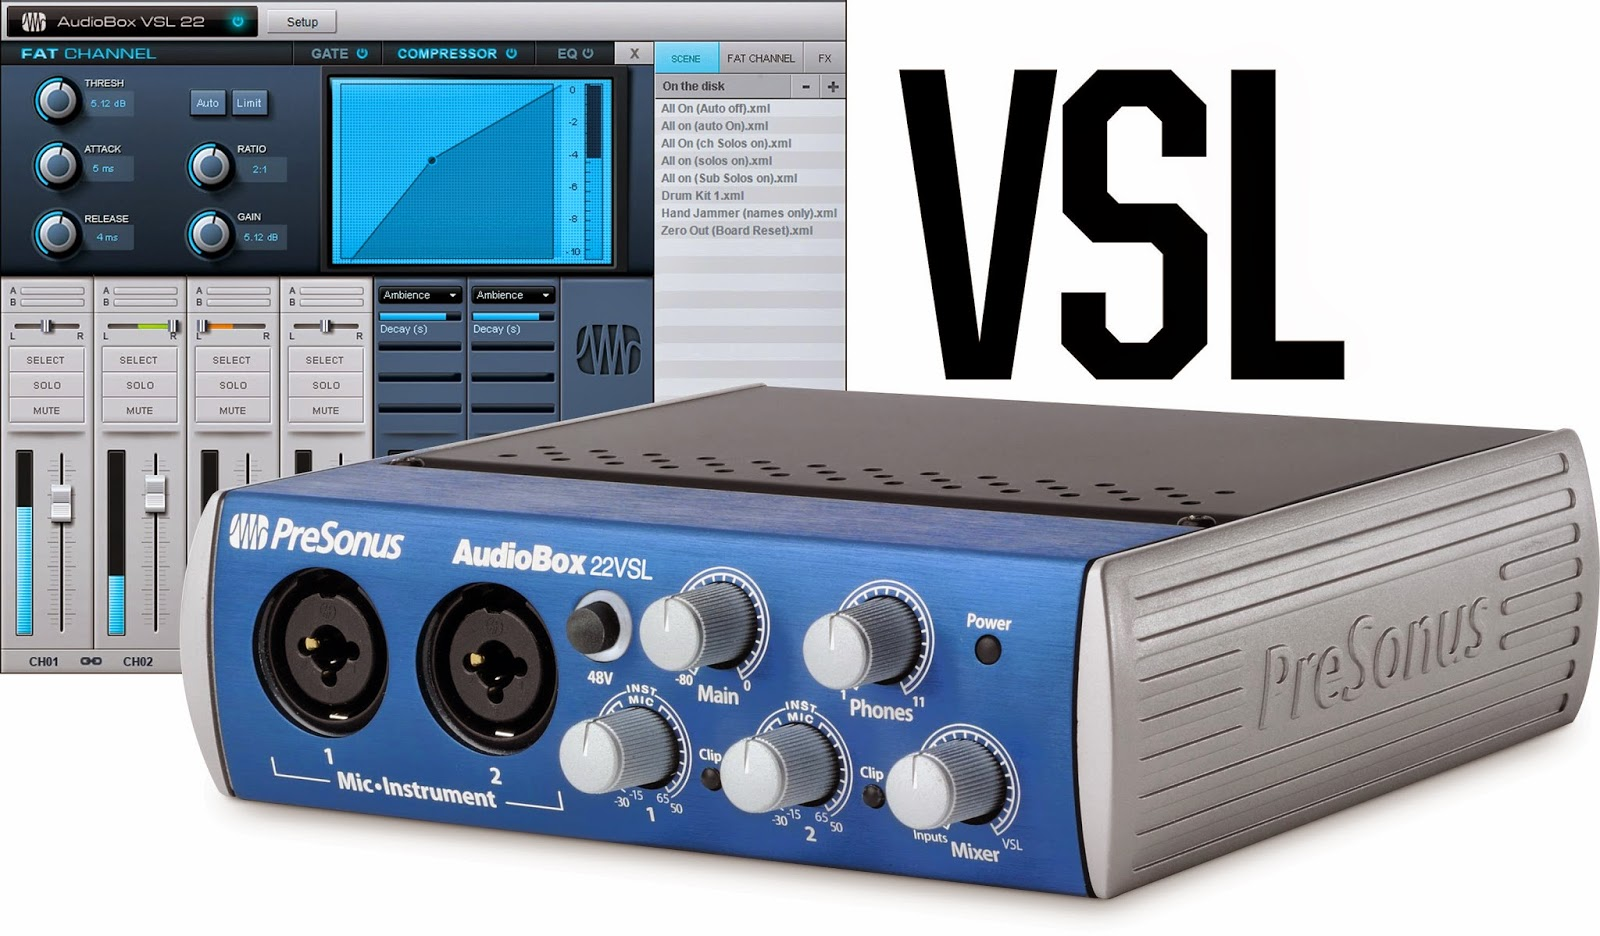 http://www.presonus.com/products/AudioBox-22VSL